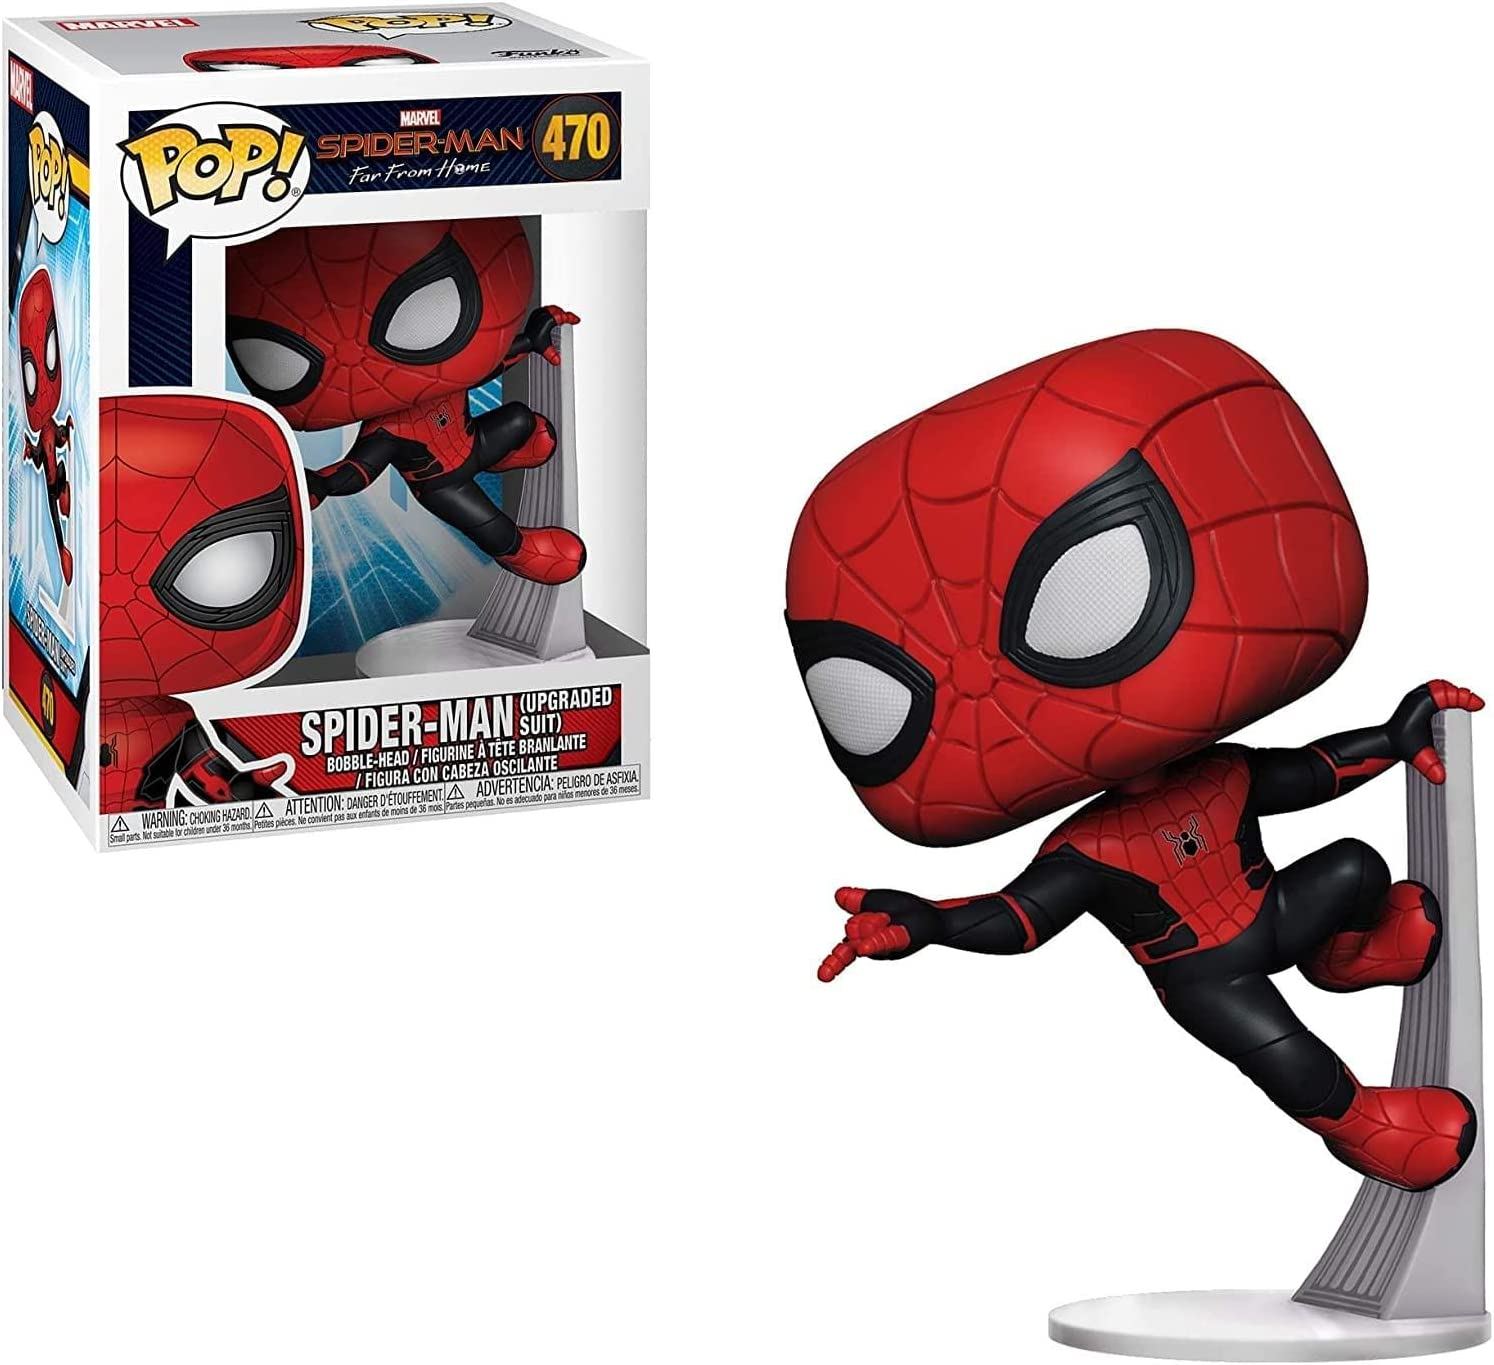 Funko Marvel: Spider-Man Far from Home - Spider-Man Upgraded Suit Pop! Vinyl Figure (Includes Compatible Pop Box Protector Case)